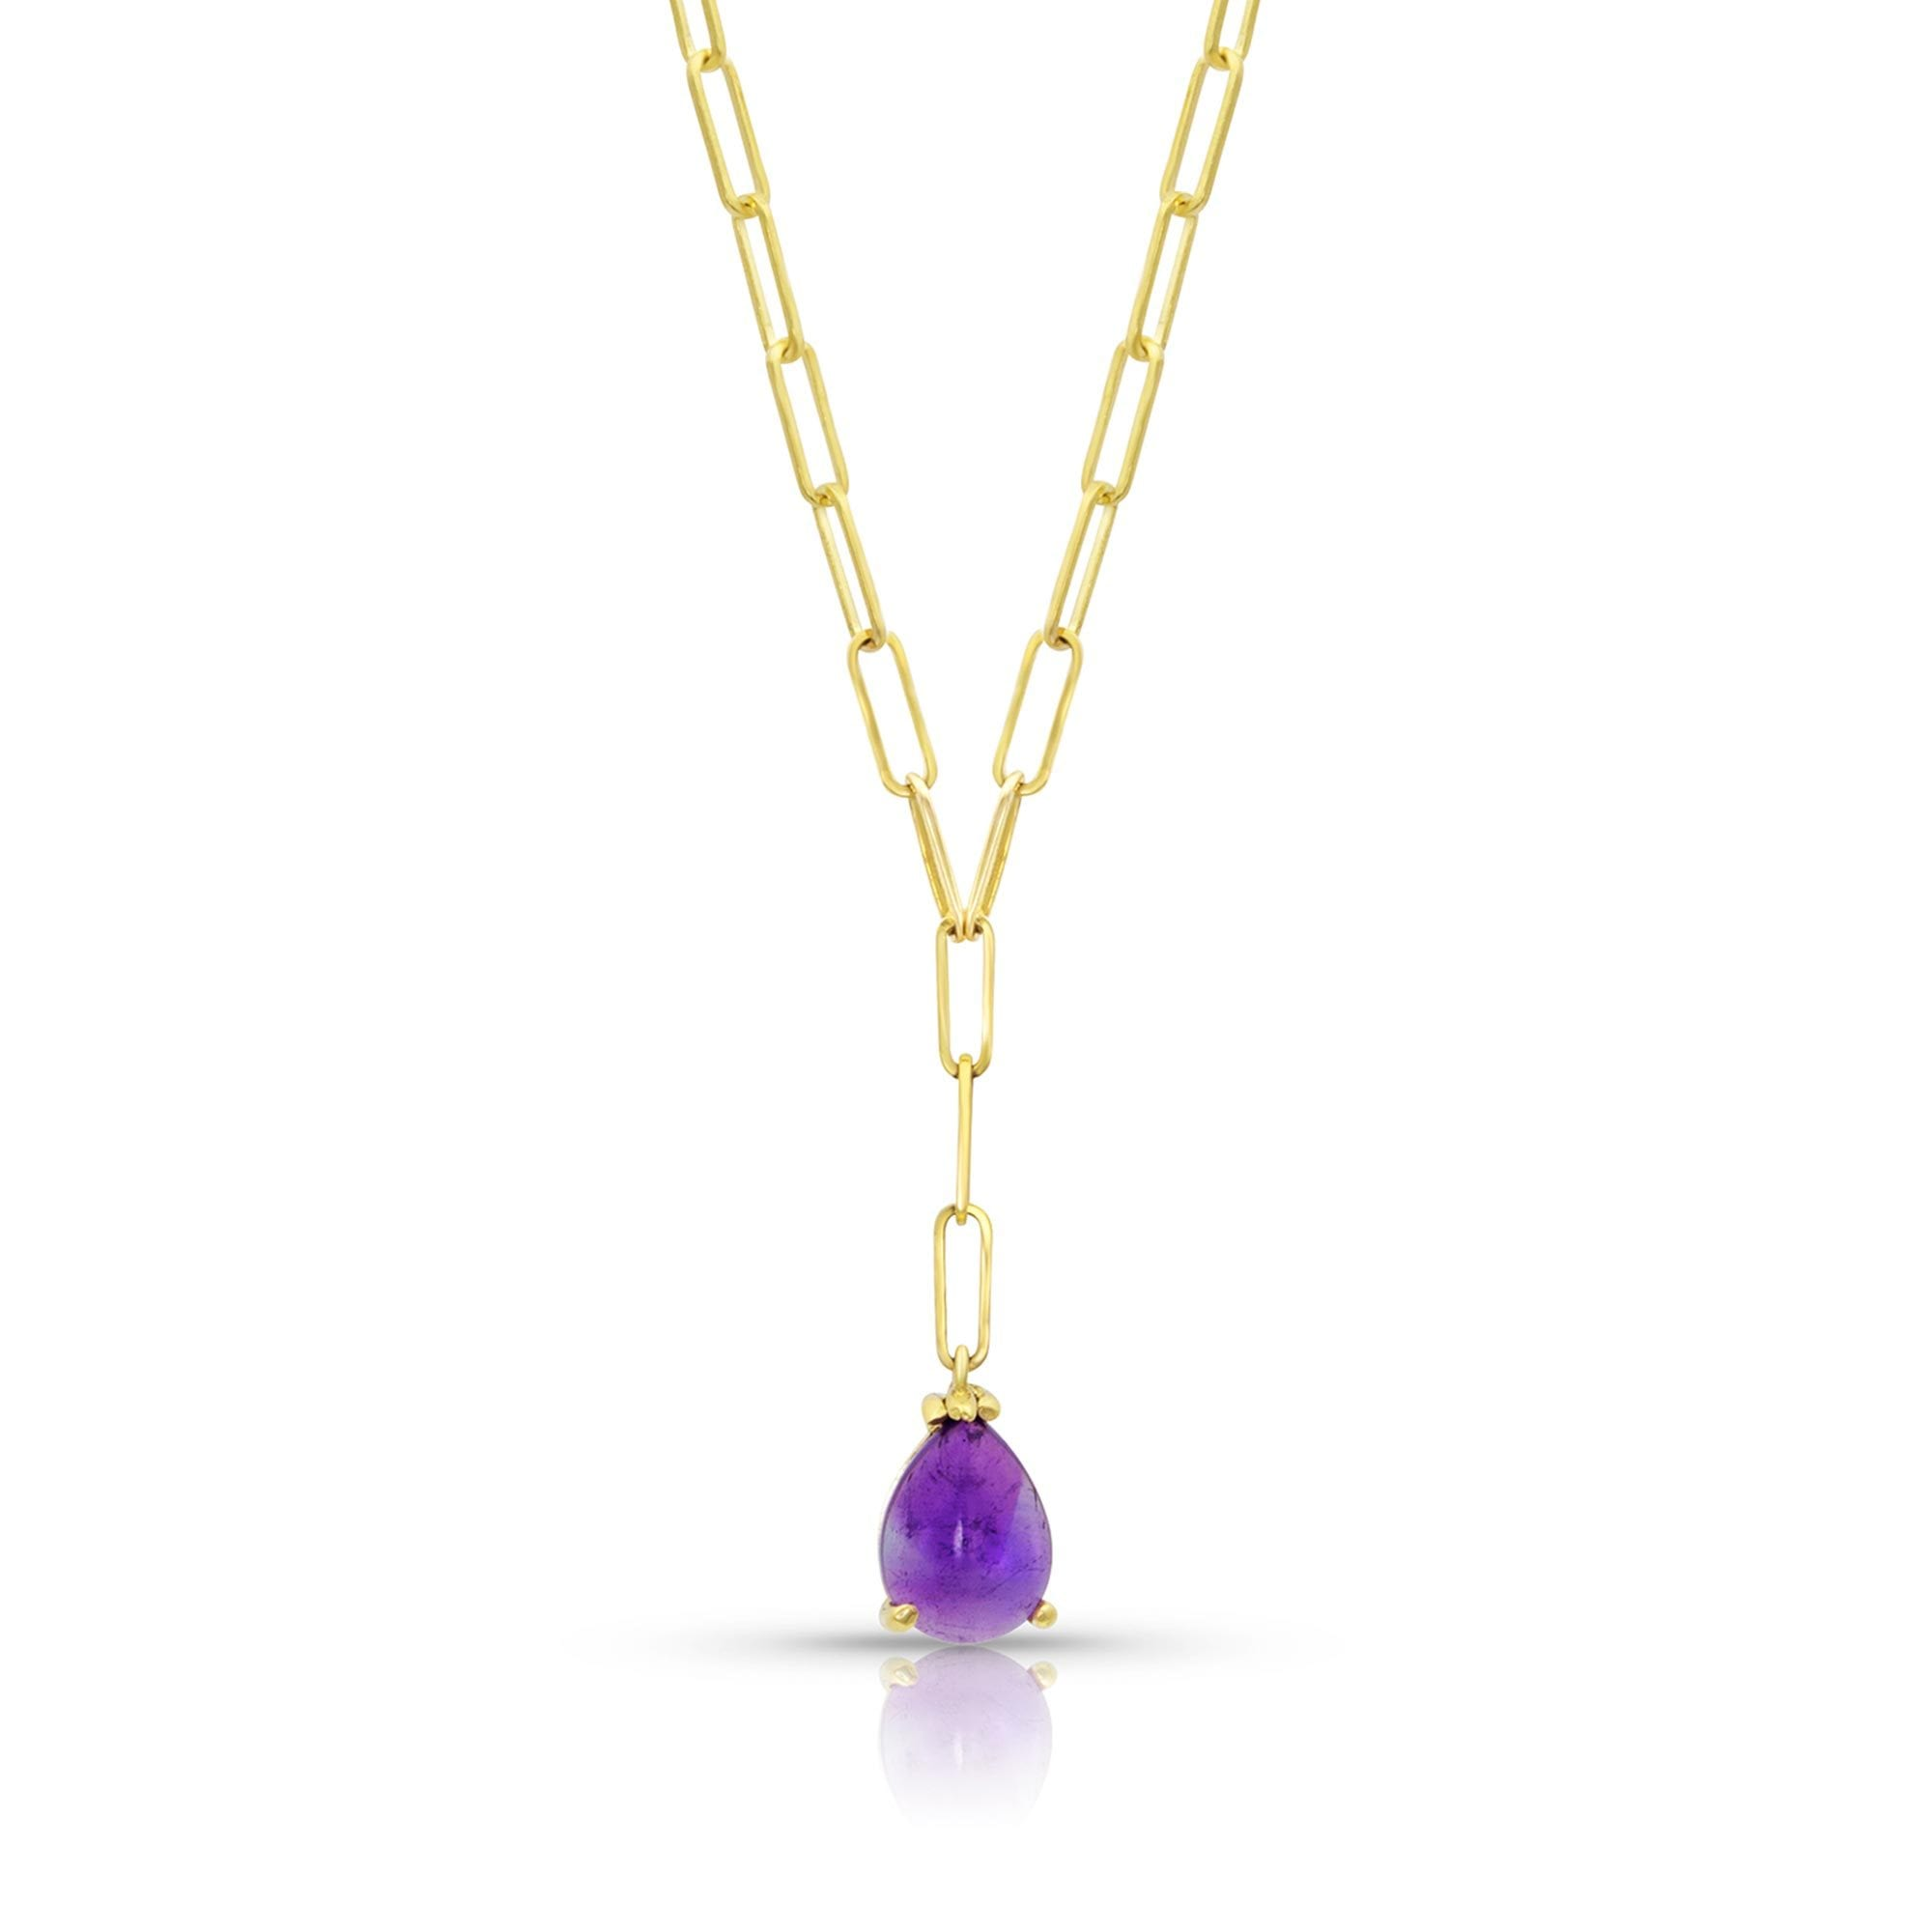 Vincents Fine Jewelry | M. Spalten | Gemdrop Amethyst Lariat Necklace